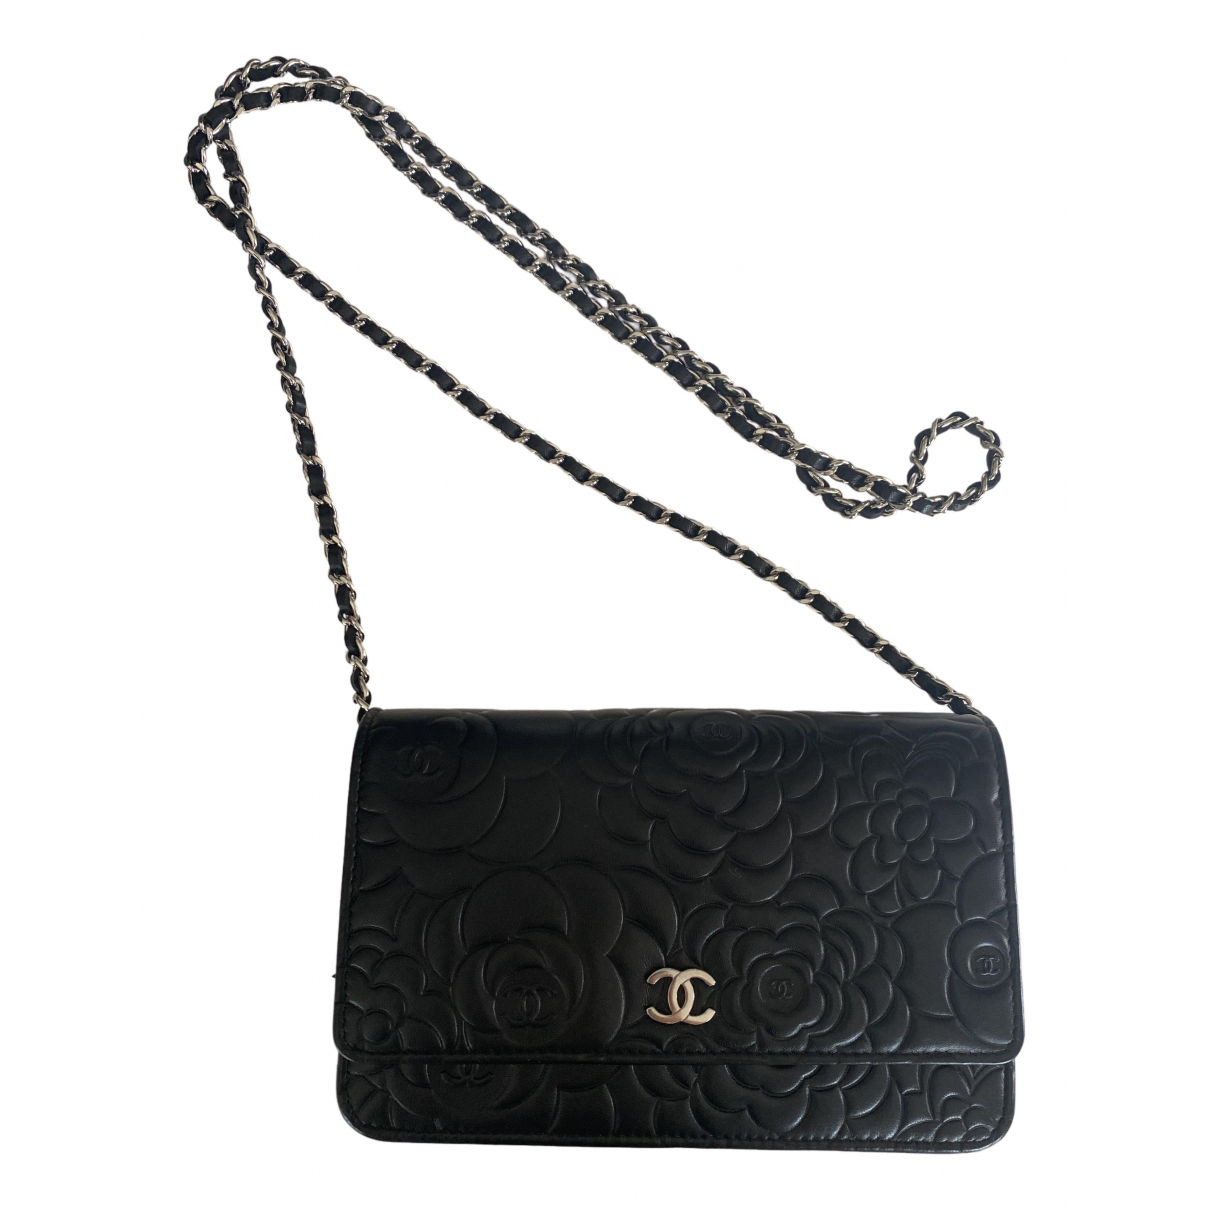 Chanel Wallet on Chain Black Leather Clutch bag for Women N